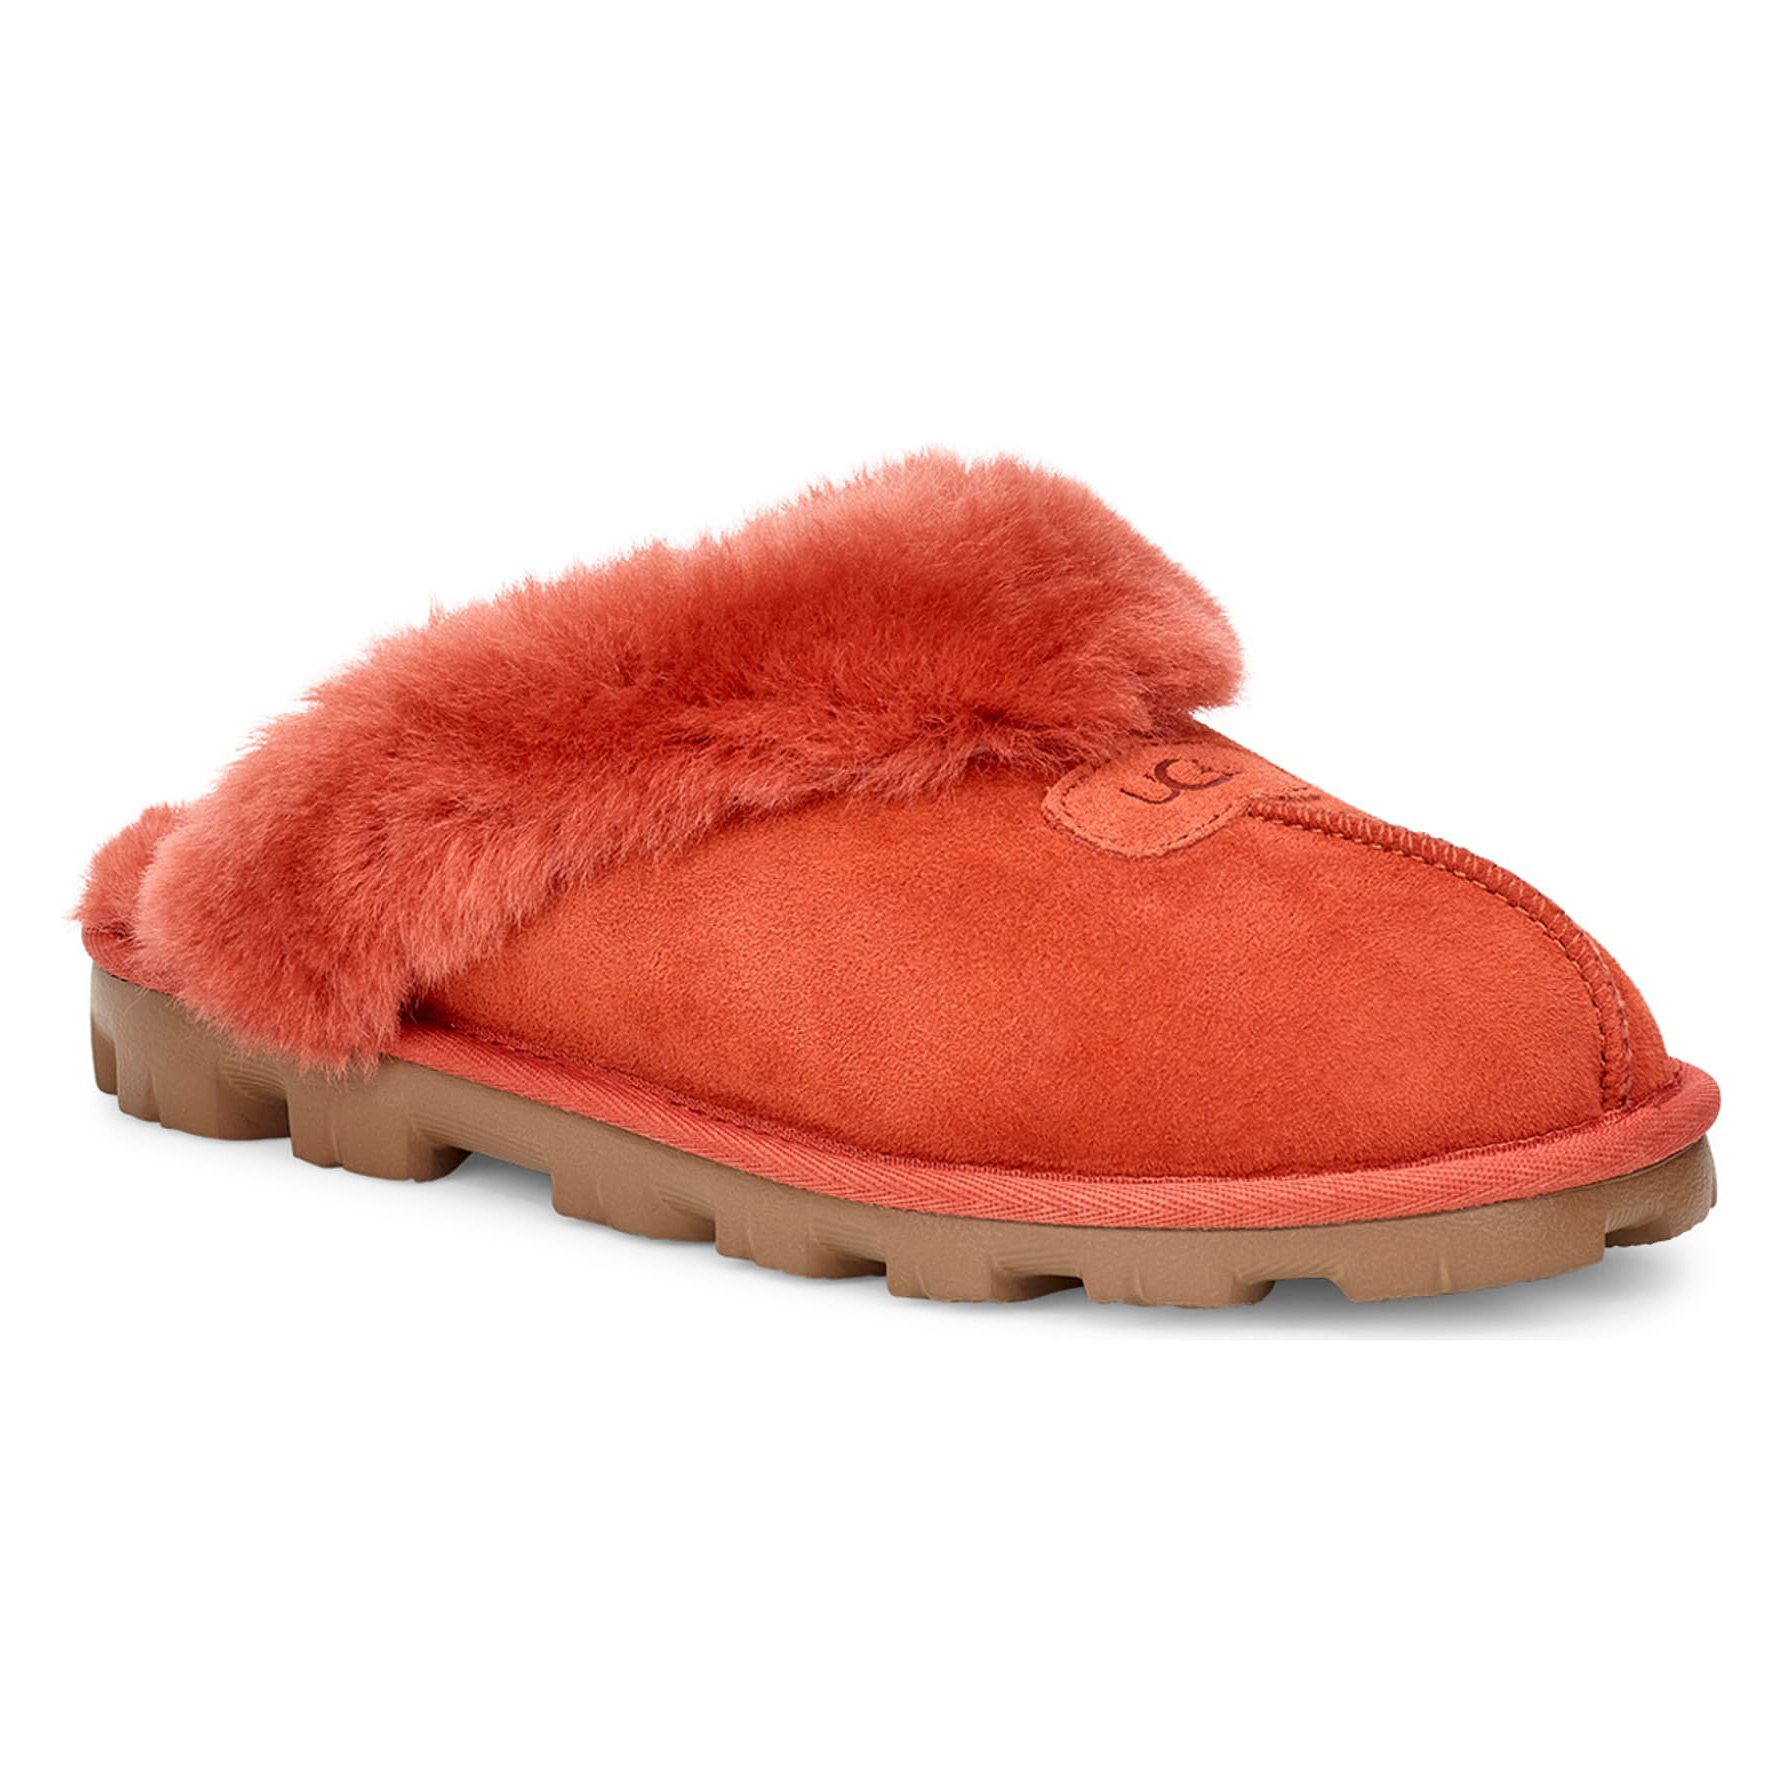 Ugg Genuine Shearling Slipper in Terracotta